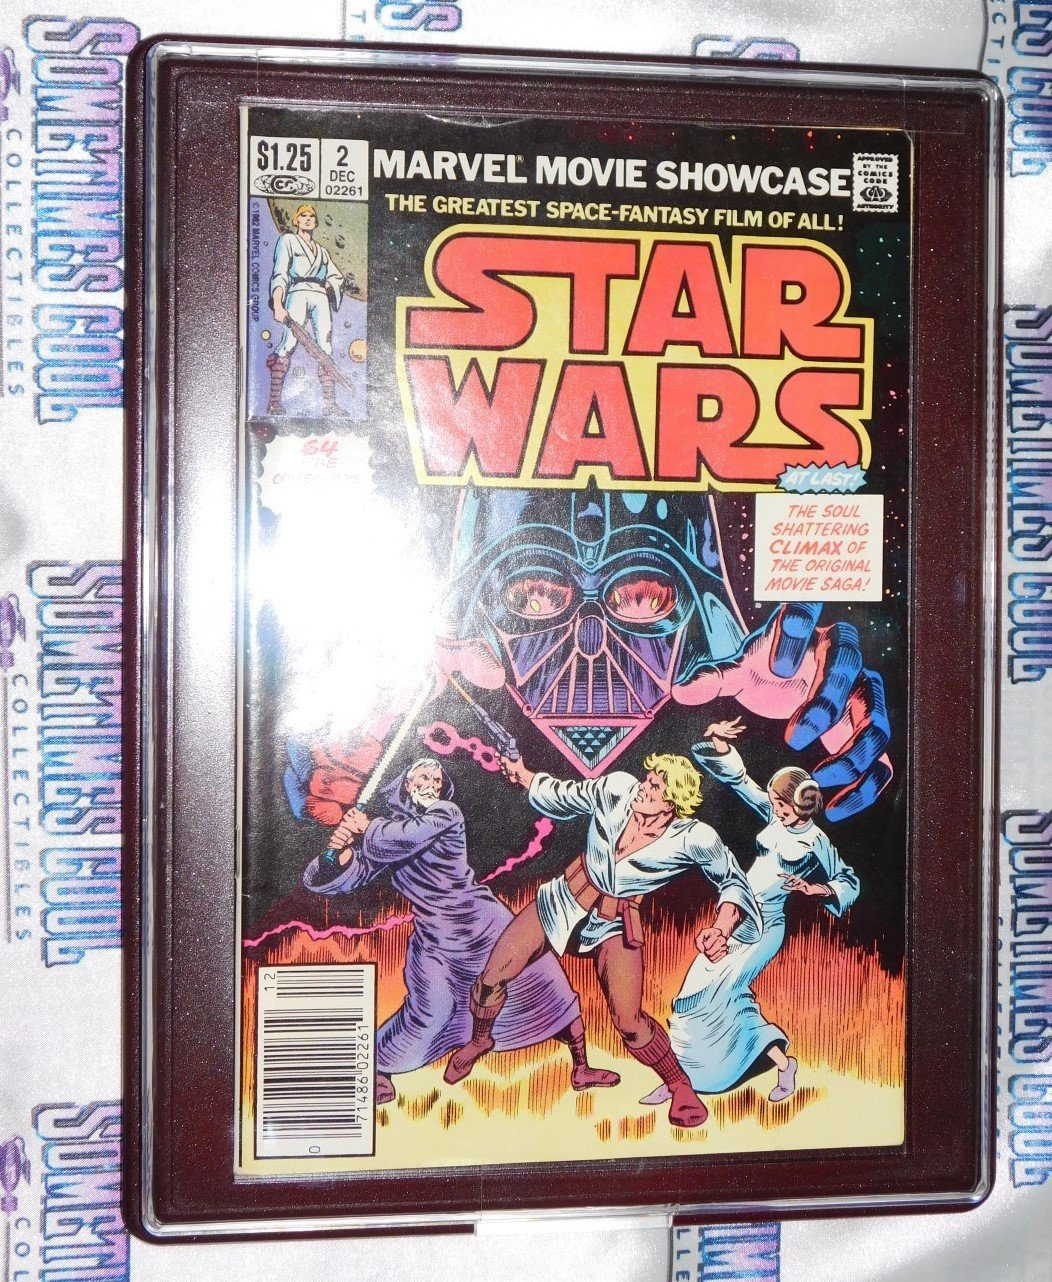 Customized Comic Frame : Marvel Movie Showcase #2 : STAR WARS